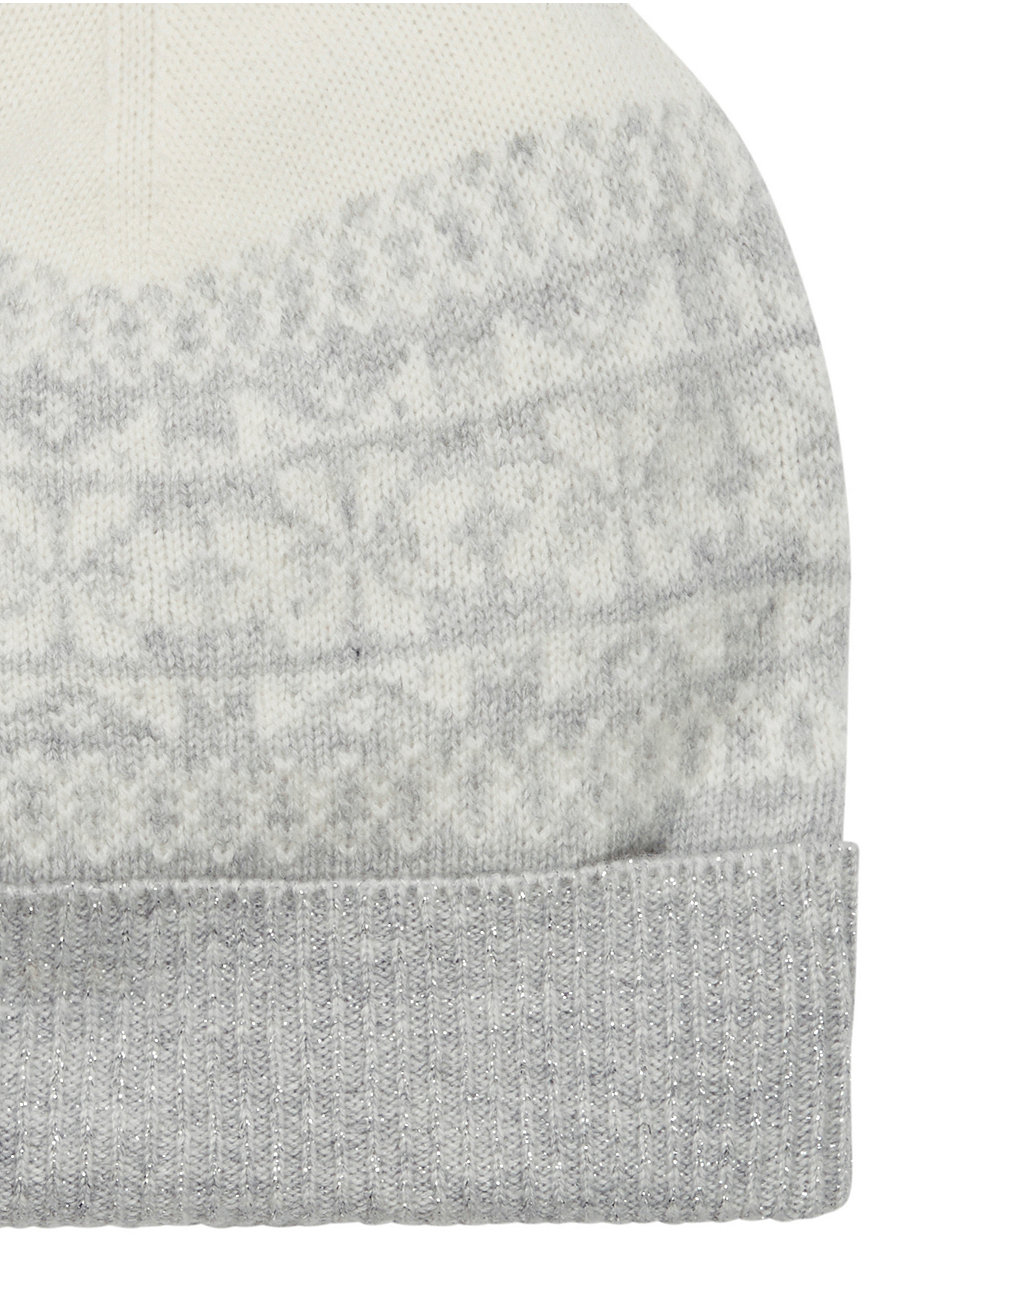 b8523edba49 Wool-Cashmere Fair Isle Beanie Hat. Press to zoom. Swipe for more images.